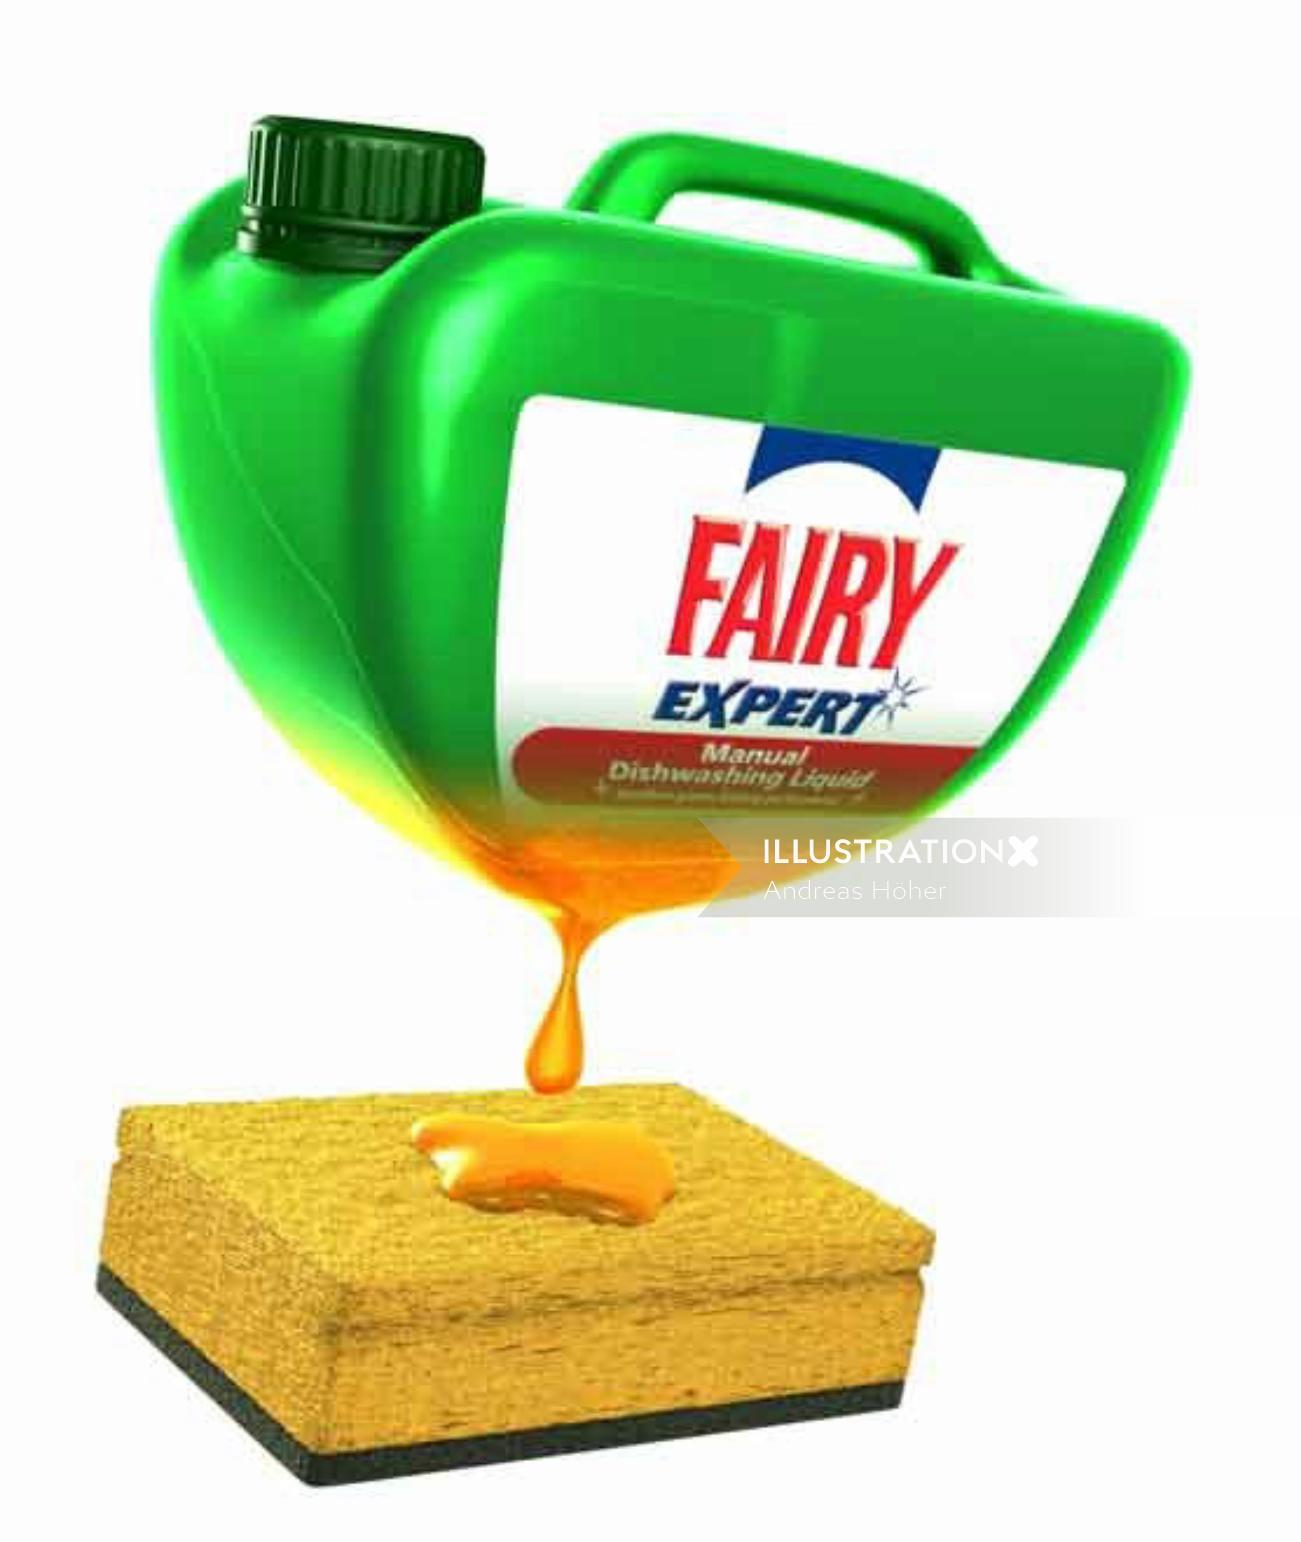 Graphic design of fairy detergent